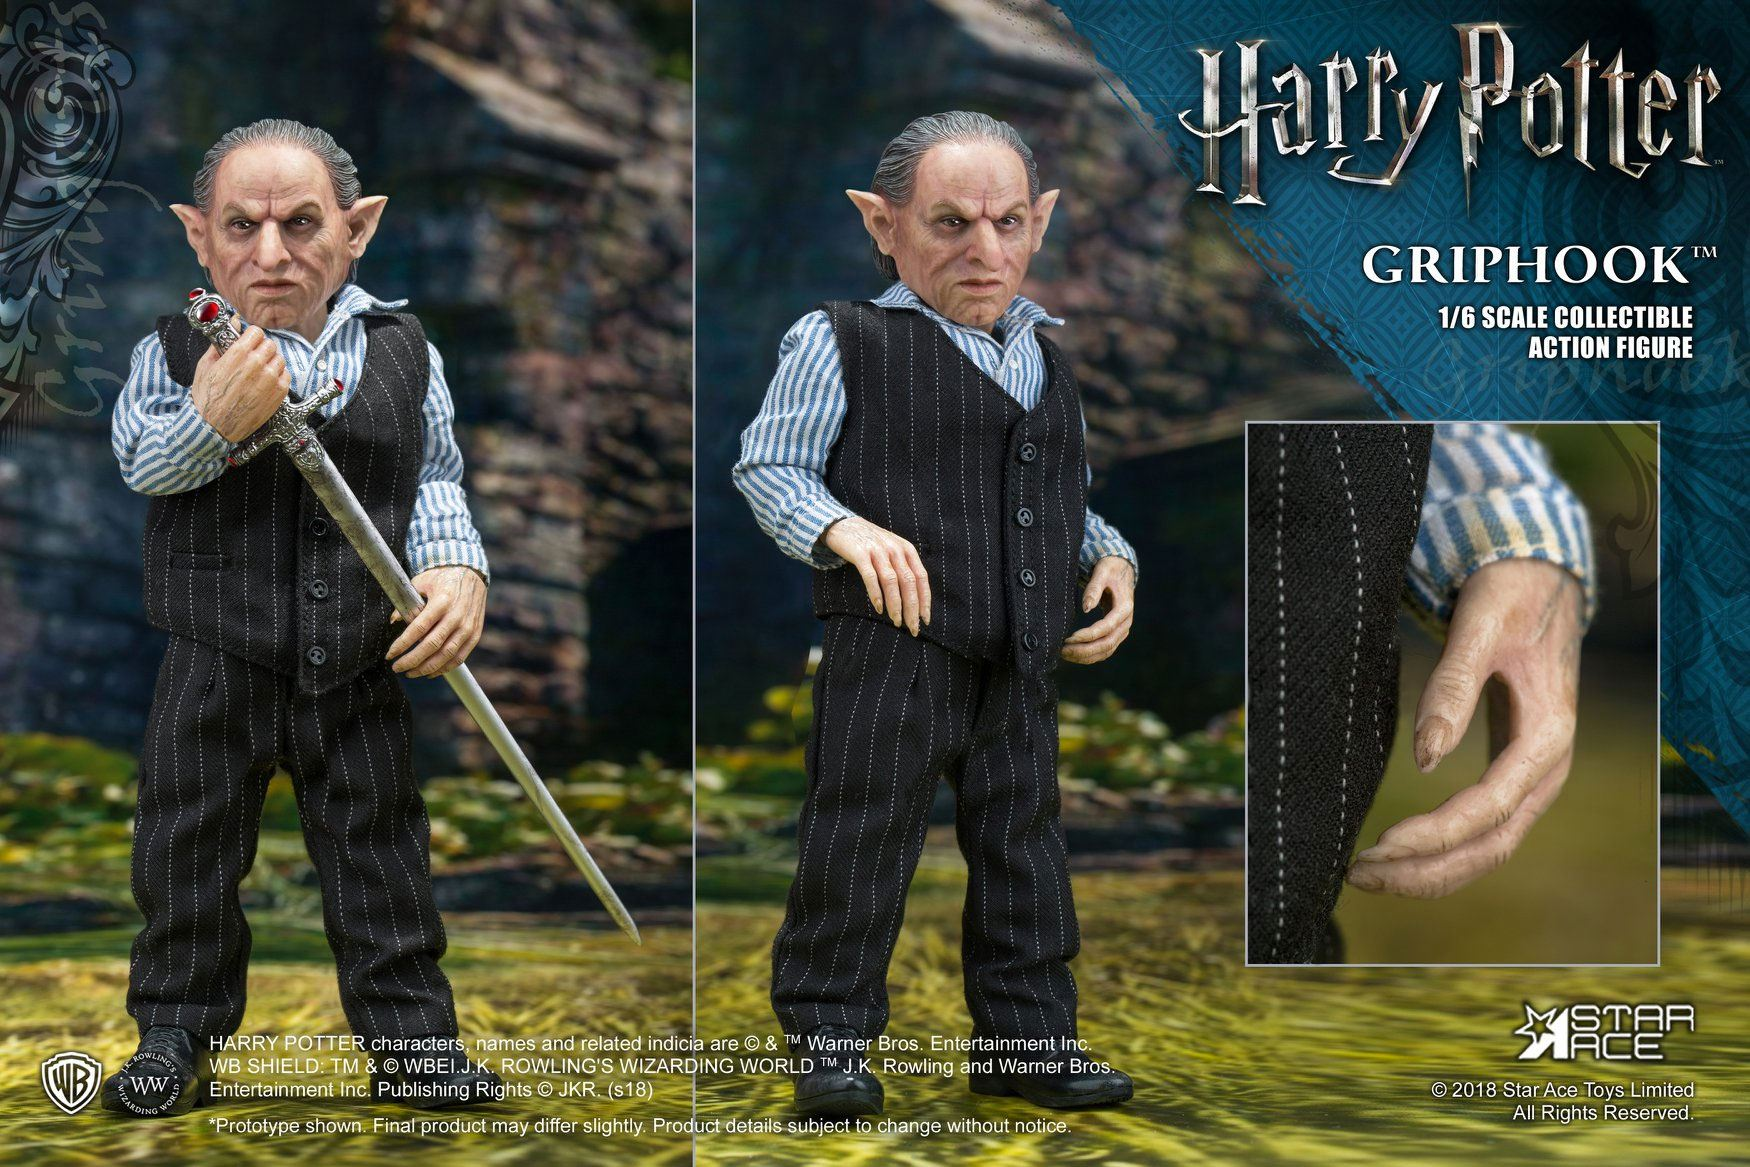 Harry Potter My Favourite Movie Action Figure 1/6 Griphook (Banker) 20 cm